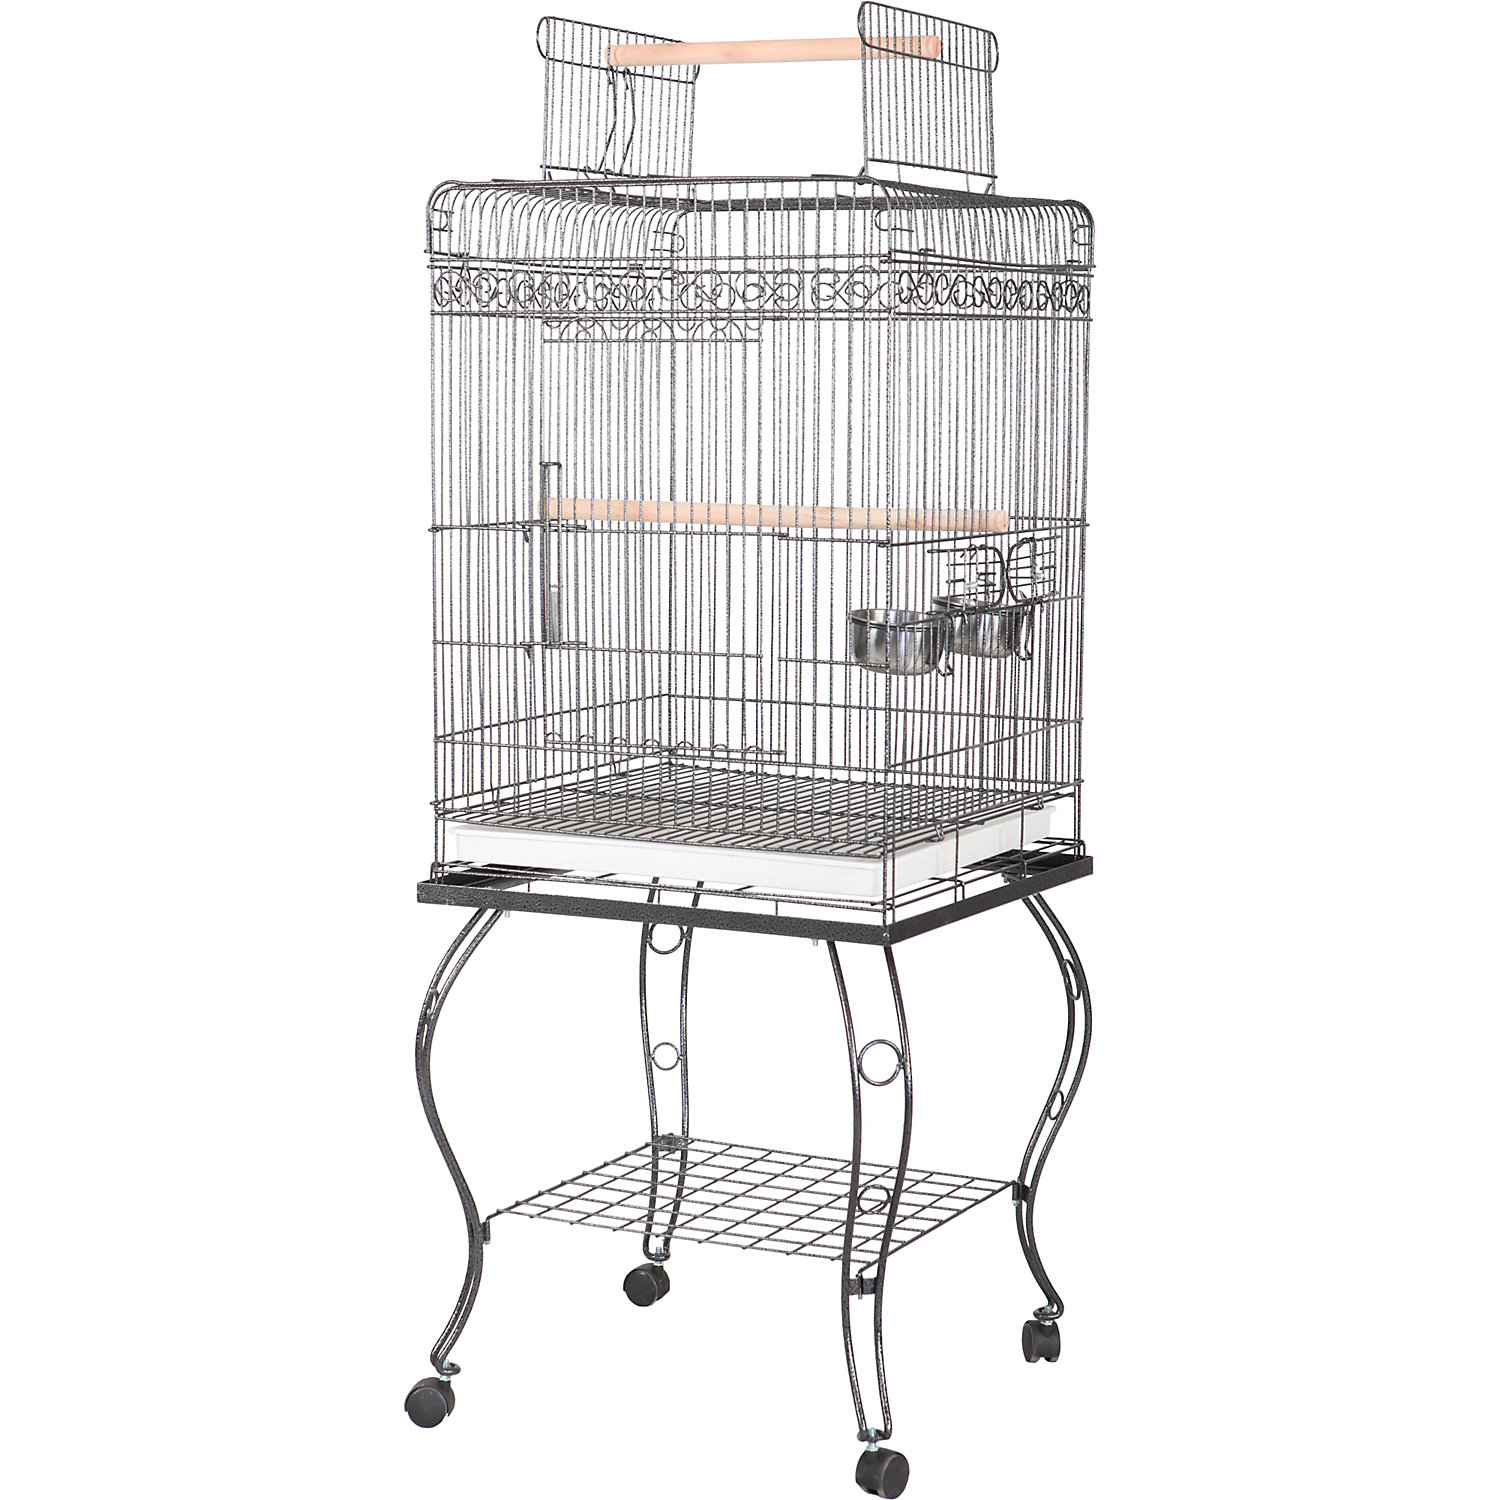 AE Cage Company 20 X 20 Play Top Bird Cage in Platinum Gray